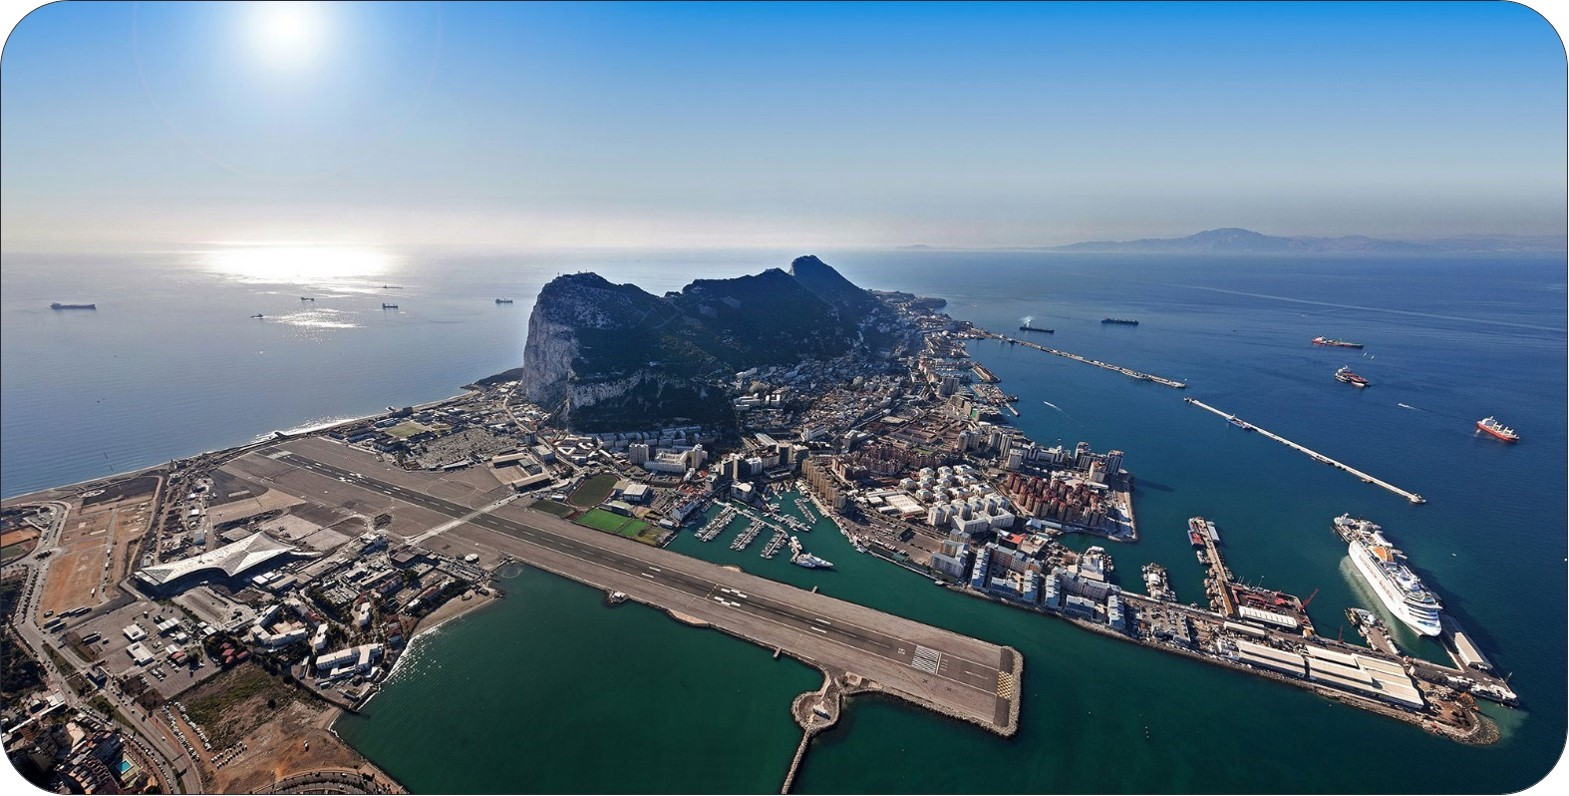 gibraltar how the eu could apply its own law and gain 5 billion a year